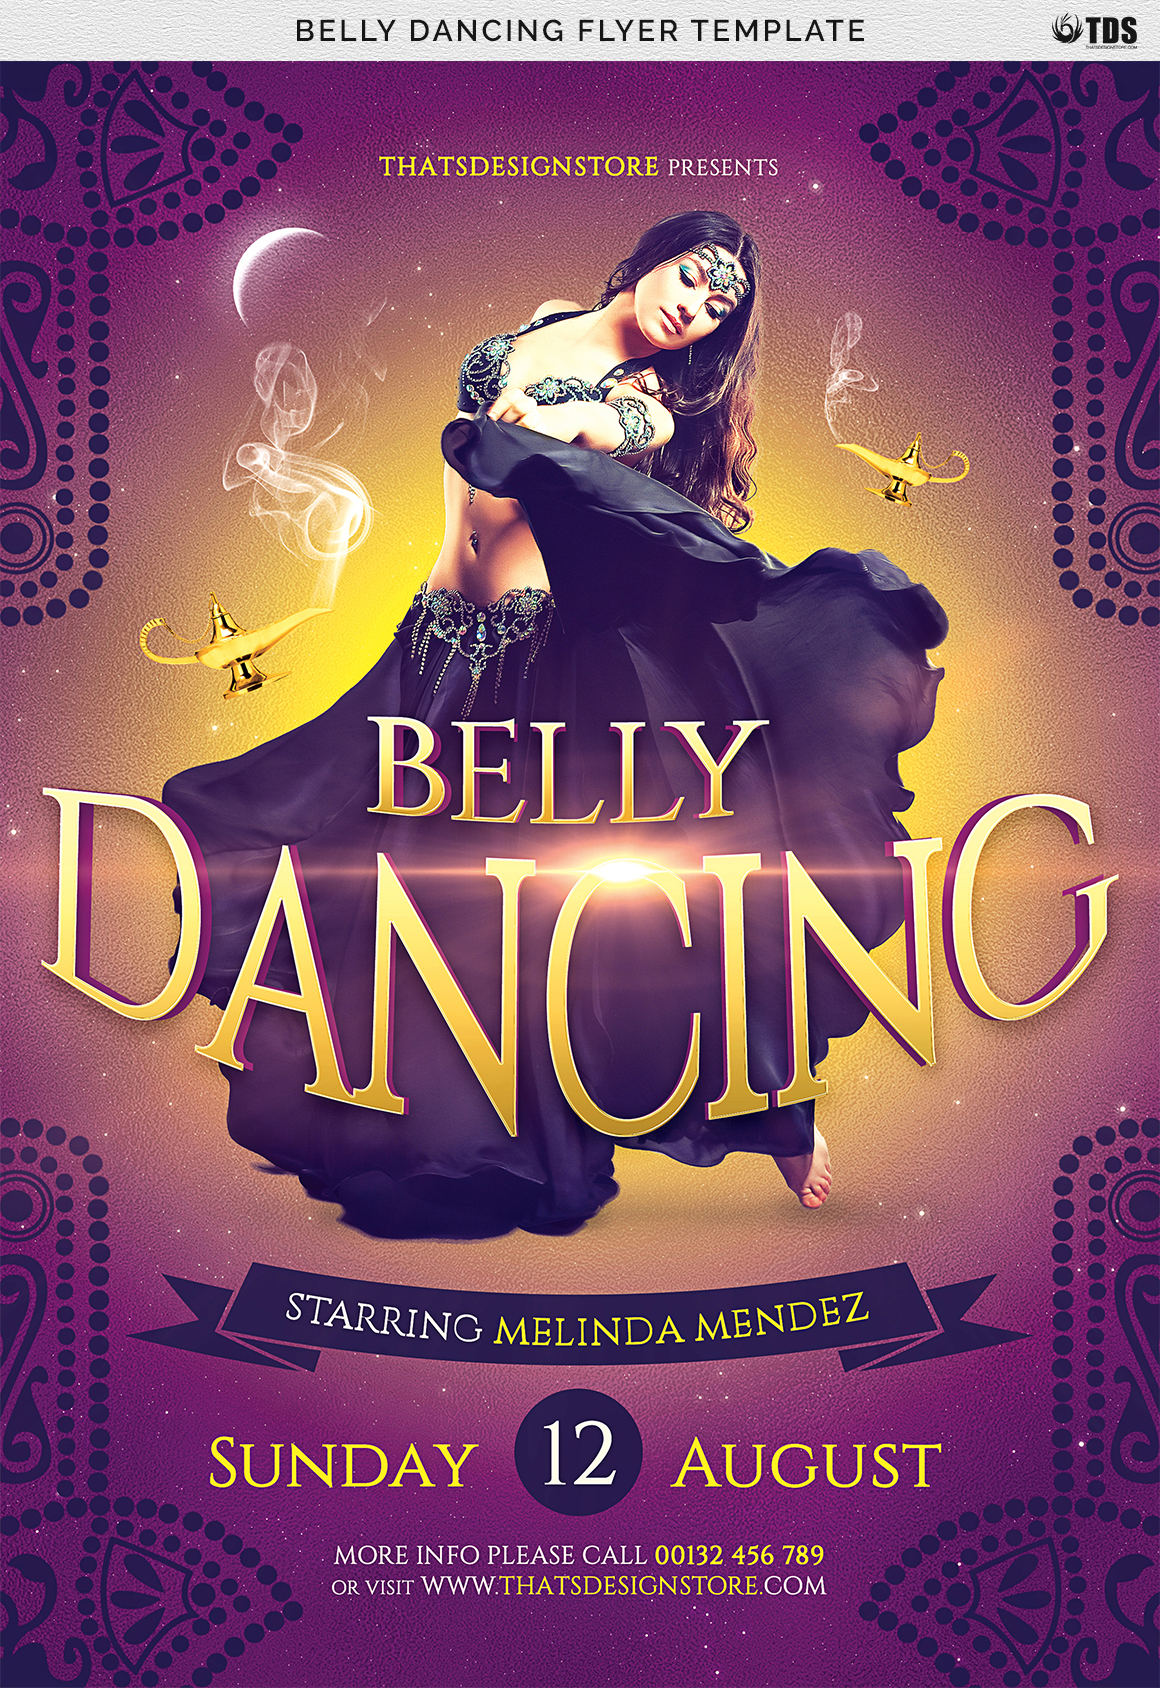 Belly Dancing Flyer Template example image 7